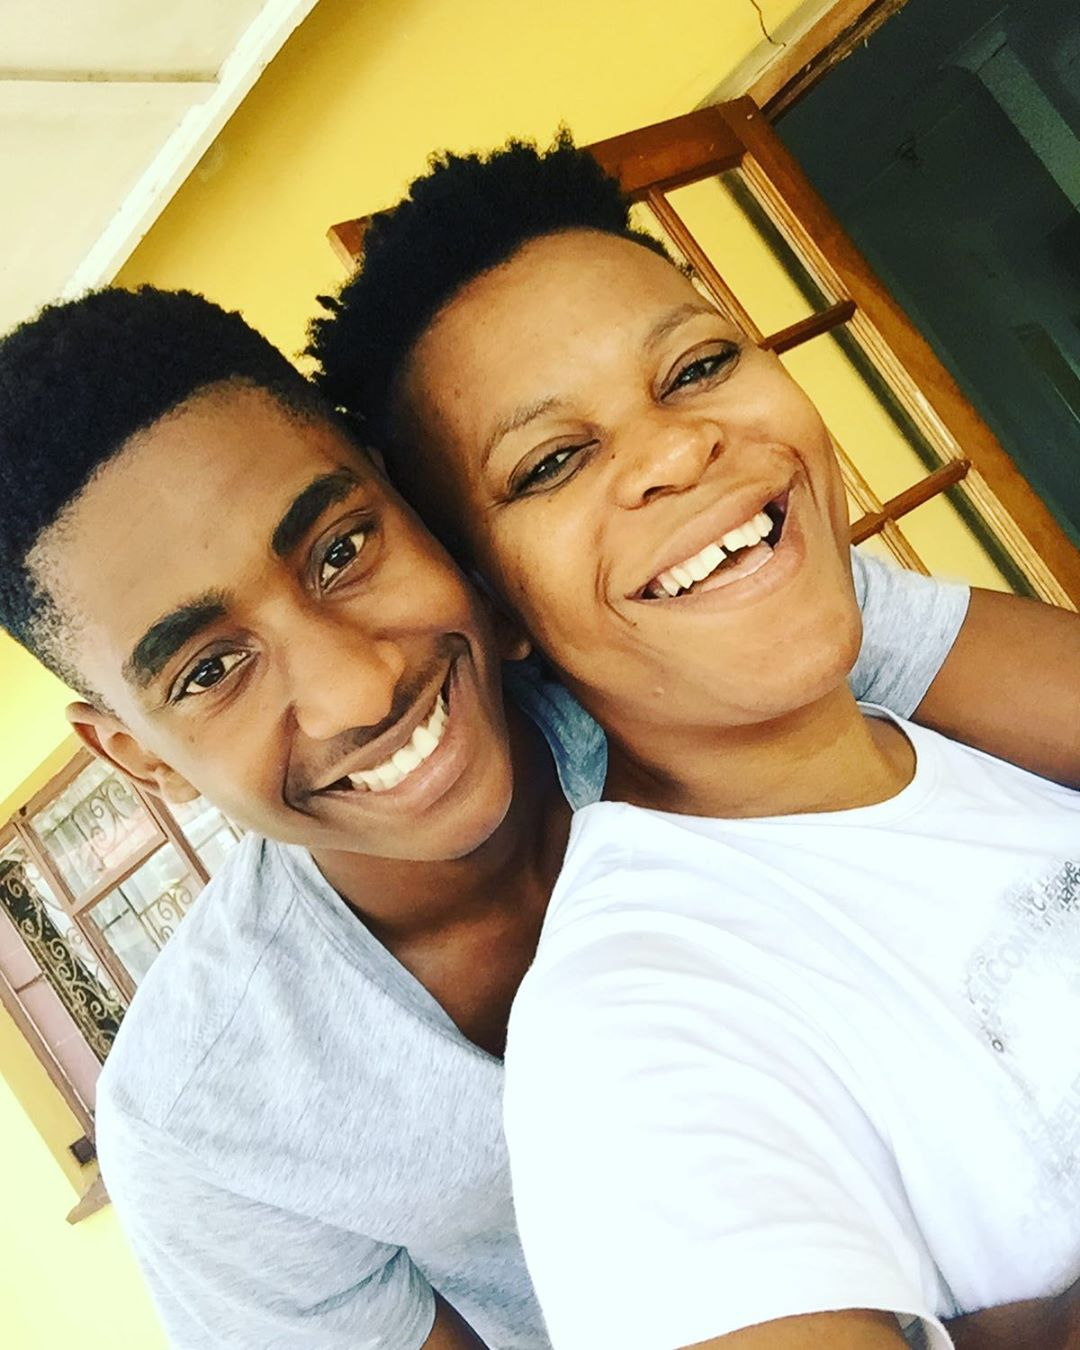 Opinion   Preference or Paedophile: Where Does Zodwa Wabantu's Love For Ben 10s Fall?